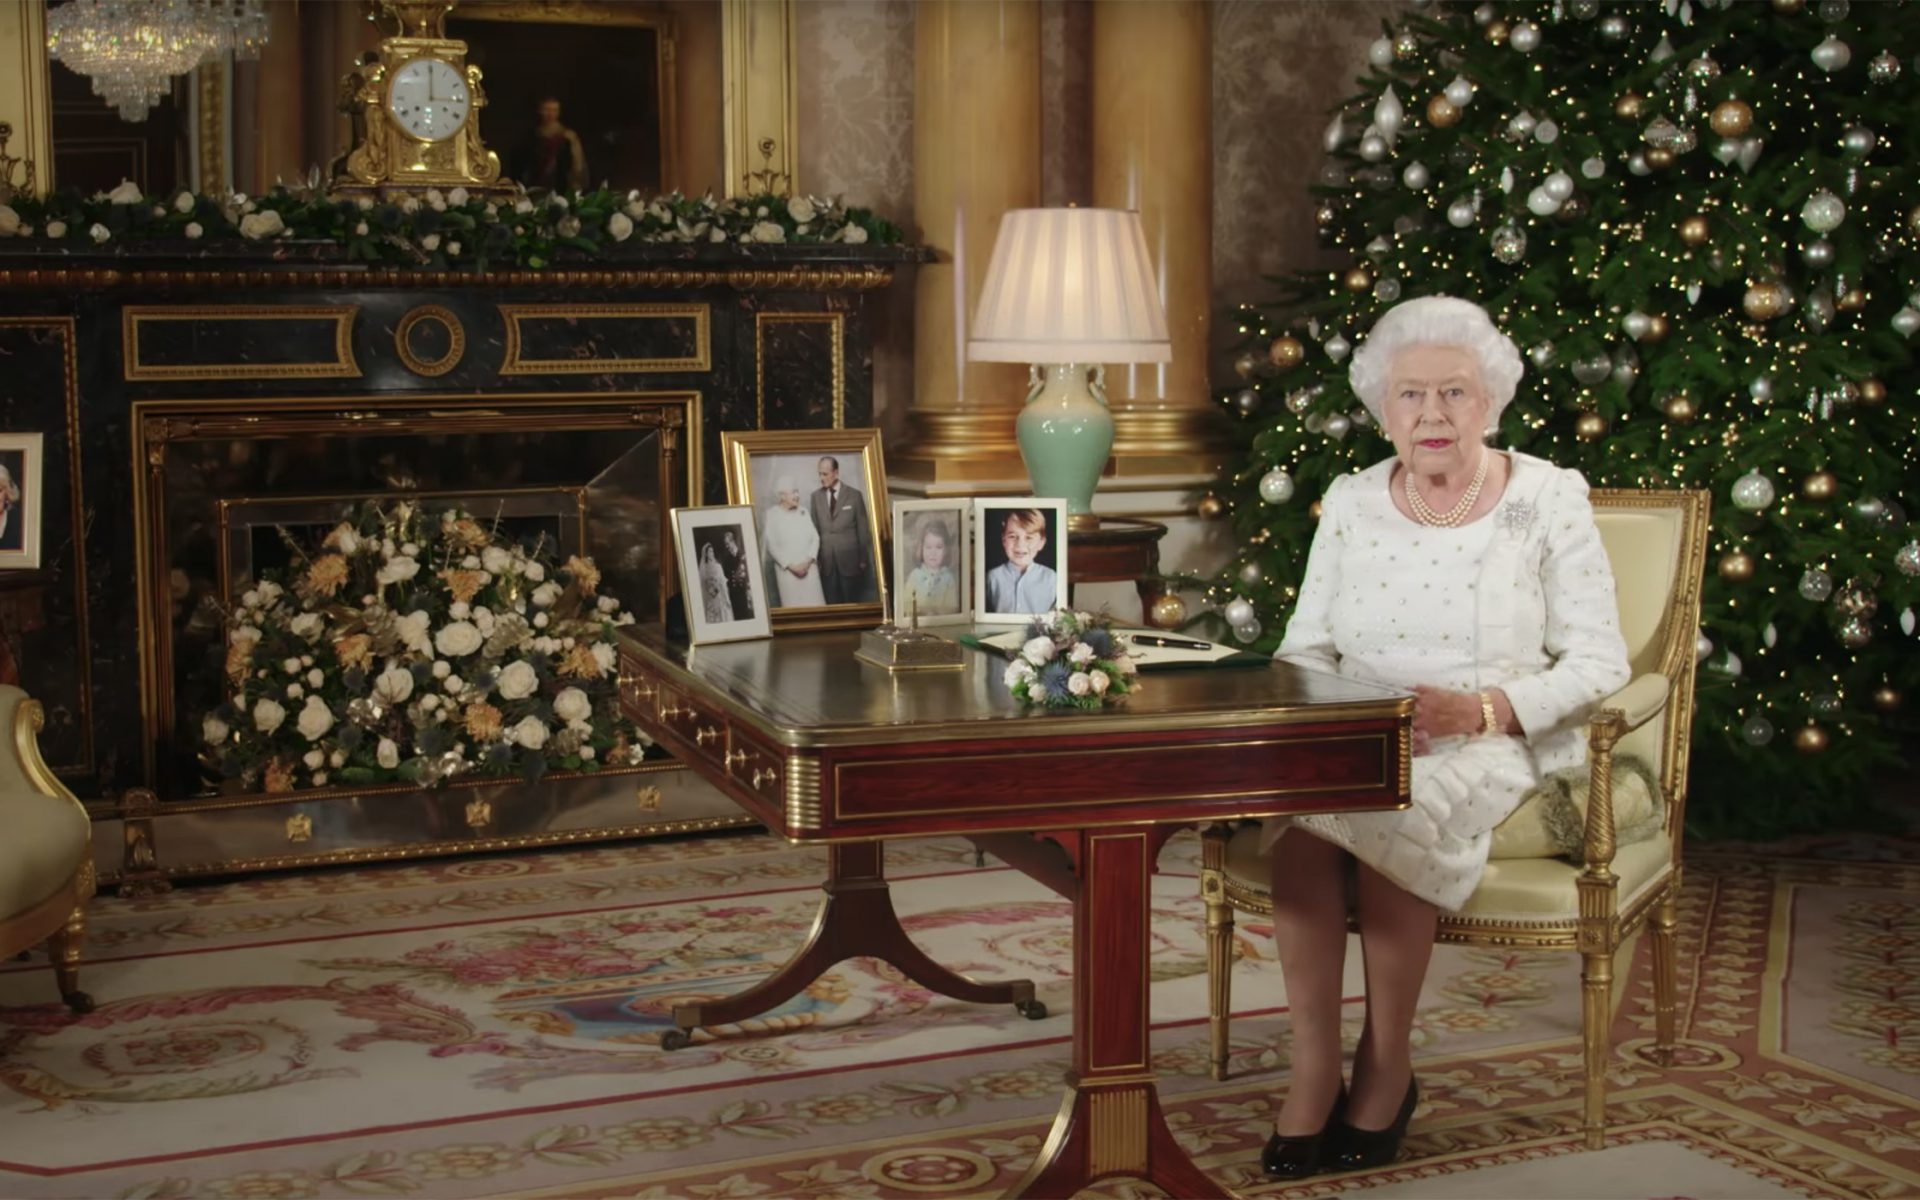 See How the Royal Family Decorates for Christmas at Buckingham Palace - Galerie